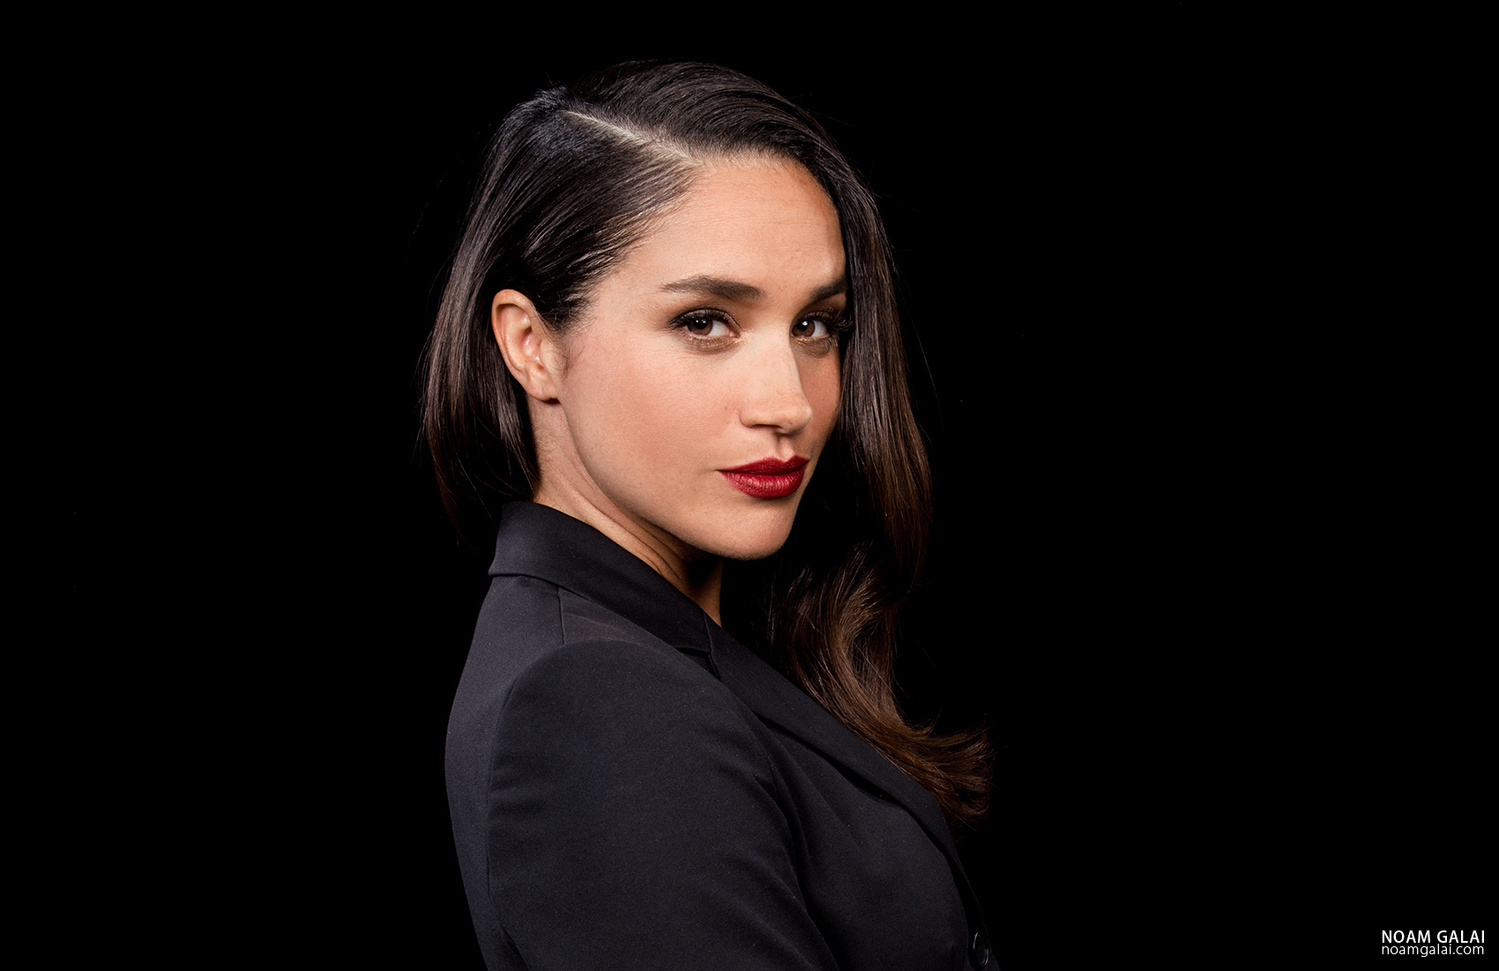 Meghan Markle, Duchess of Sussex by Noam Galai